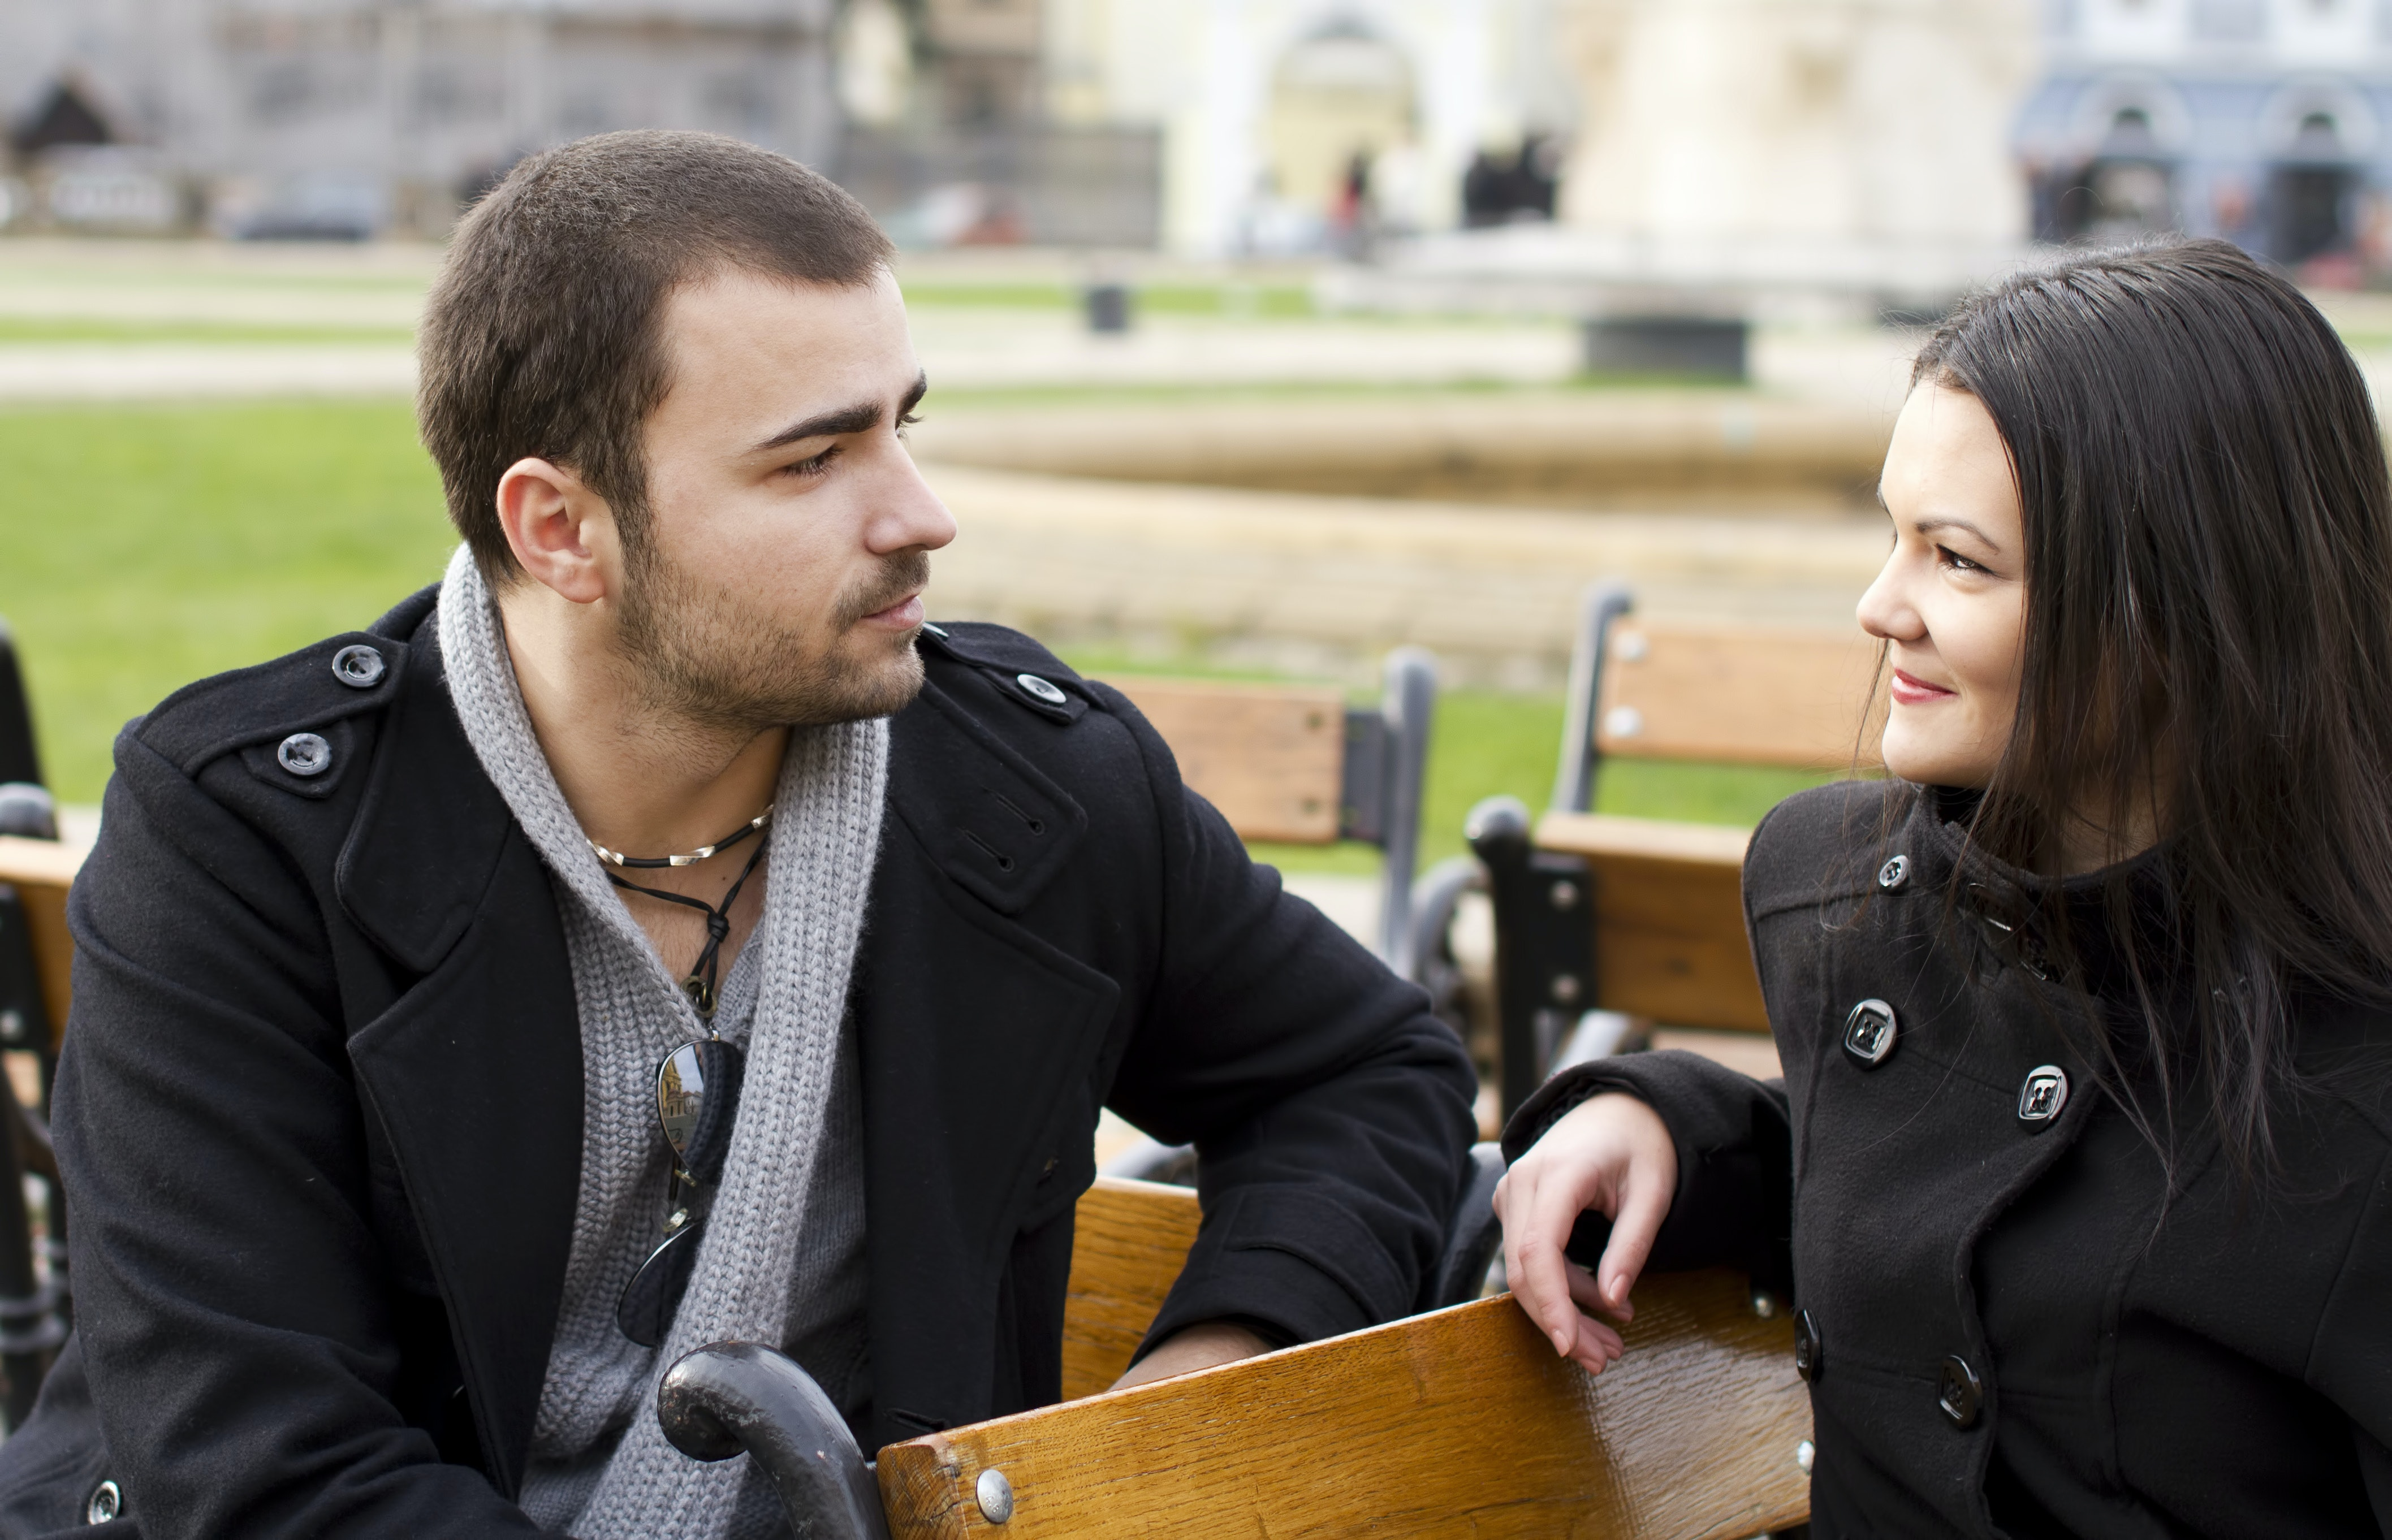 Discussing marriage during dating